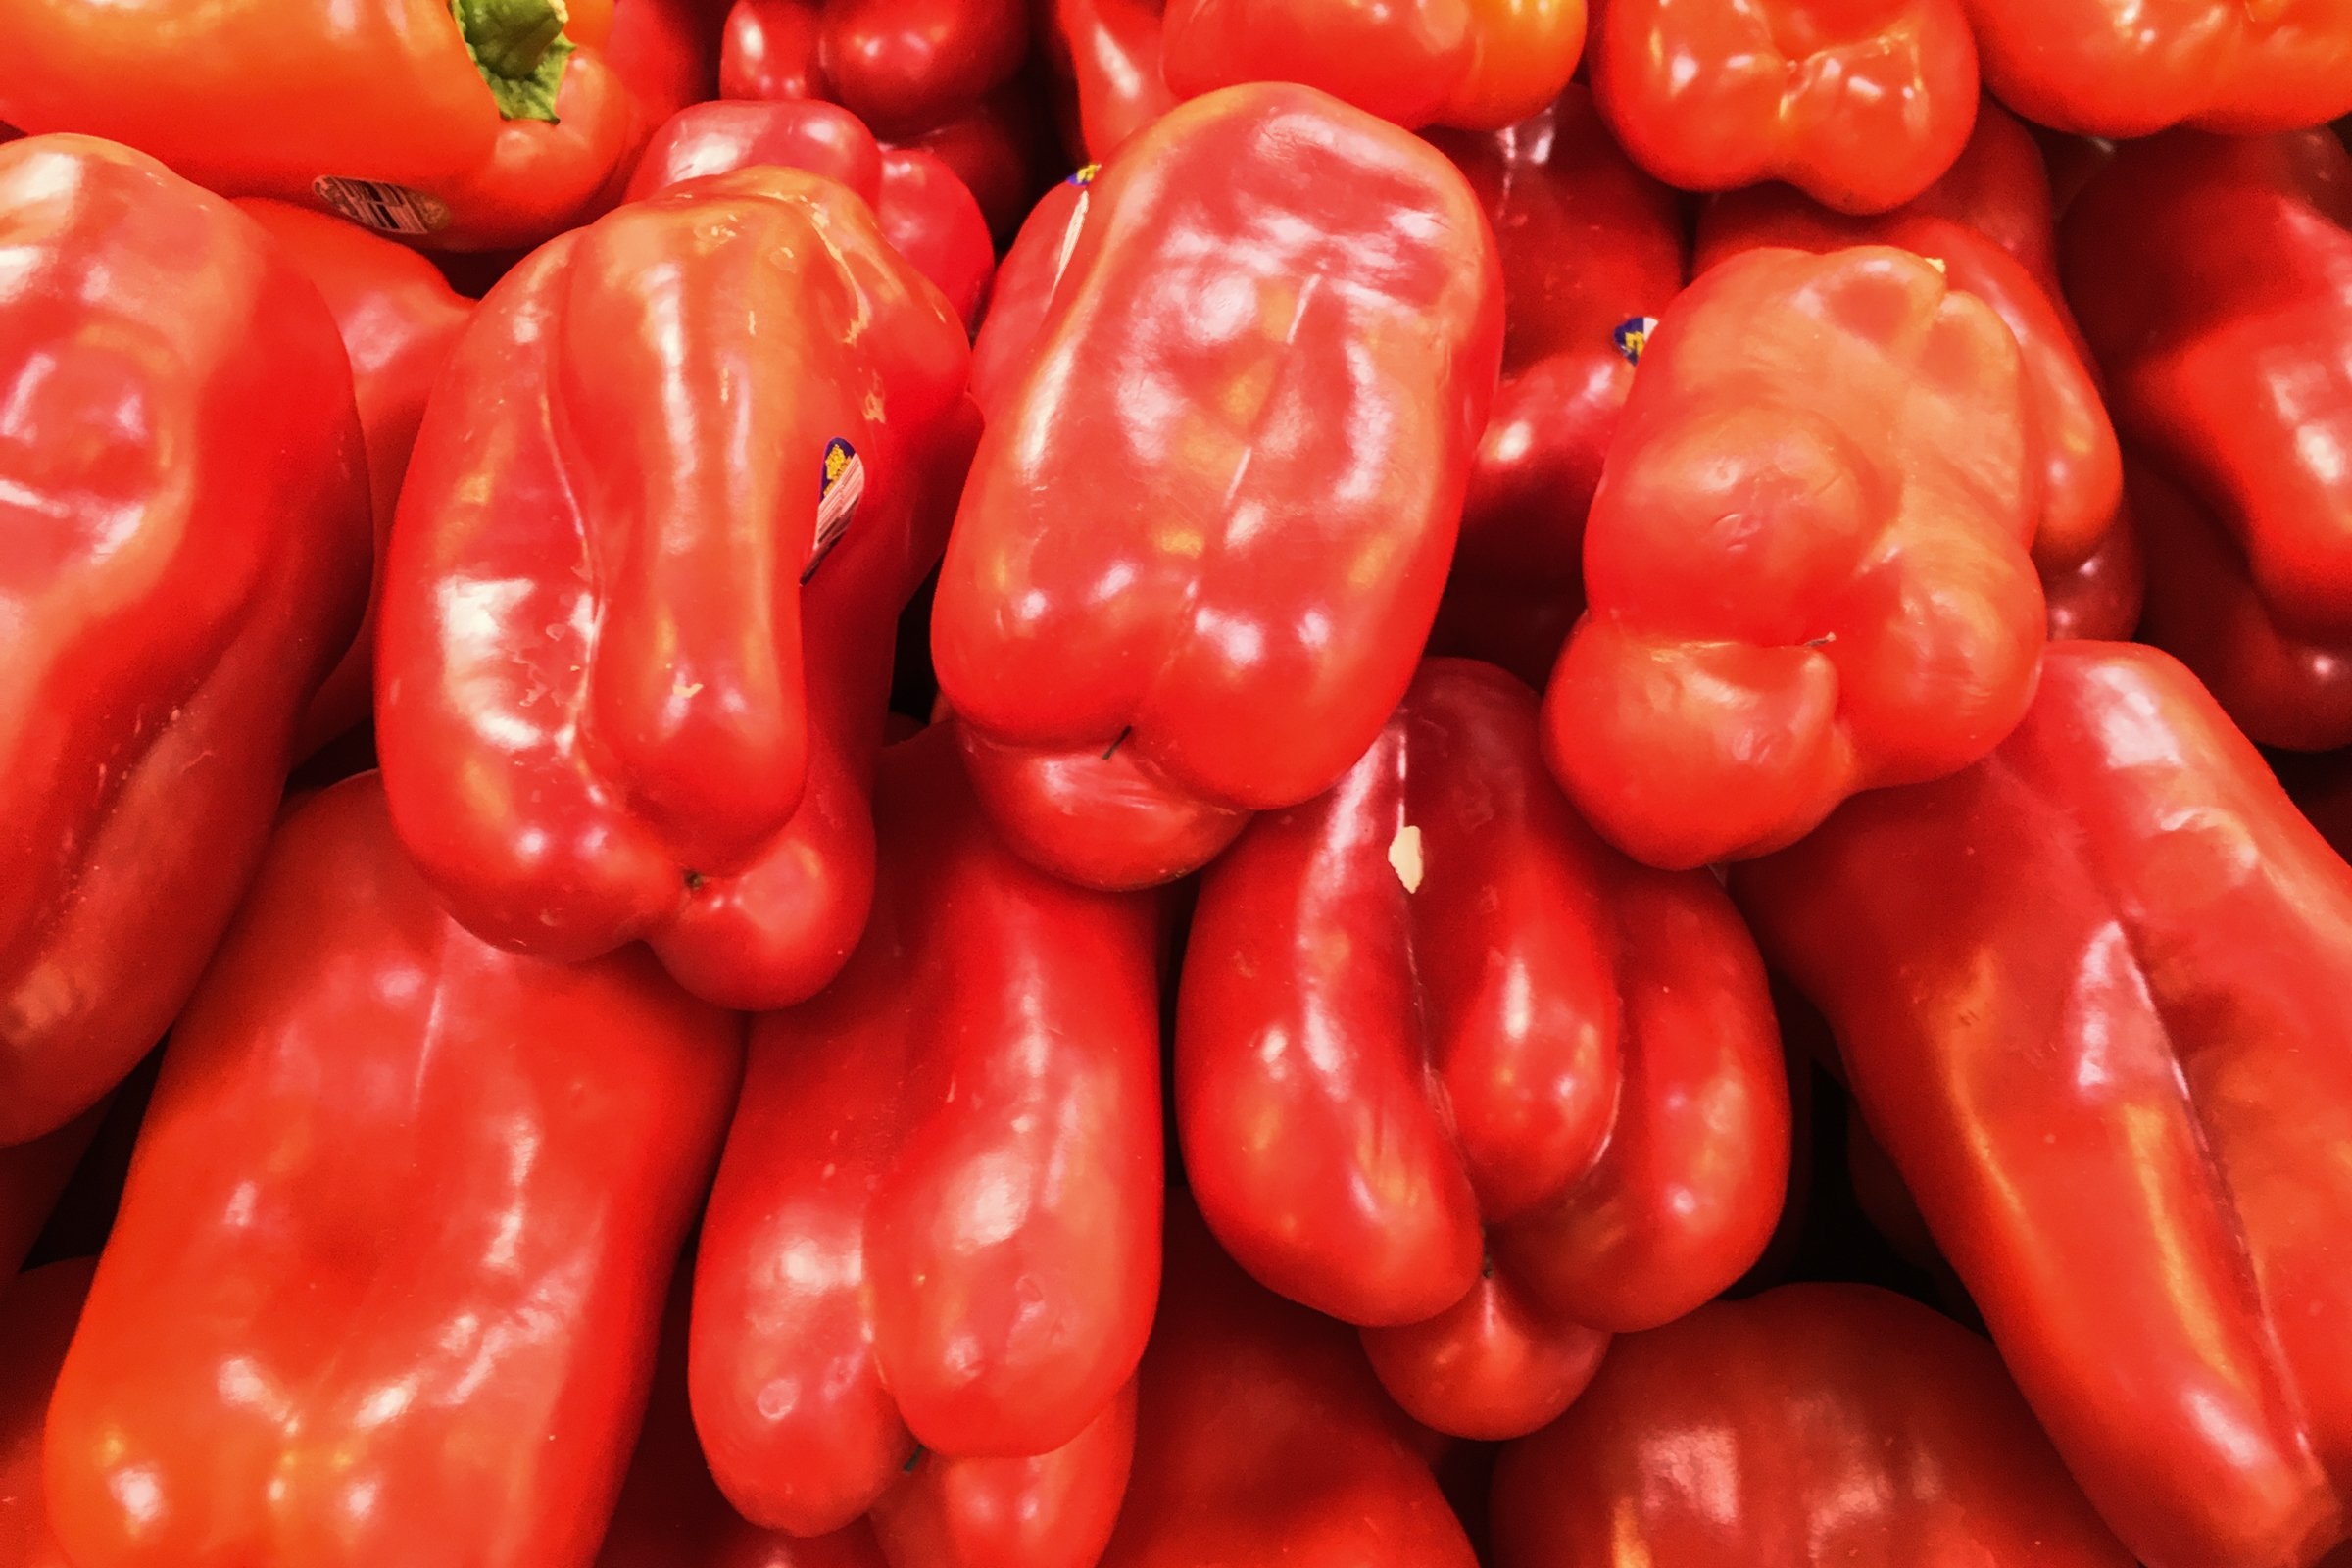 Bunch of Red Bell Peppers